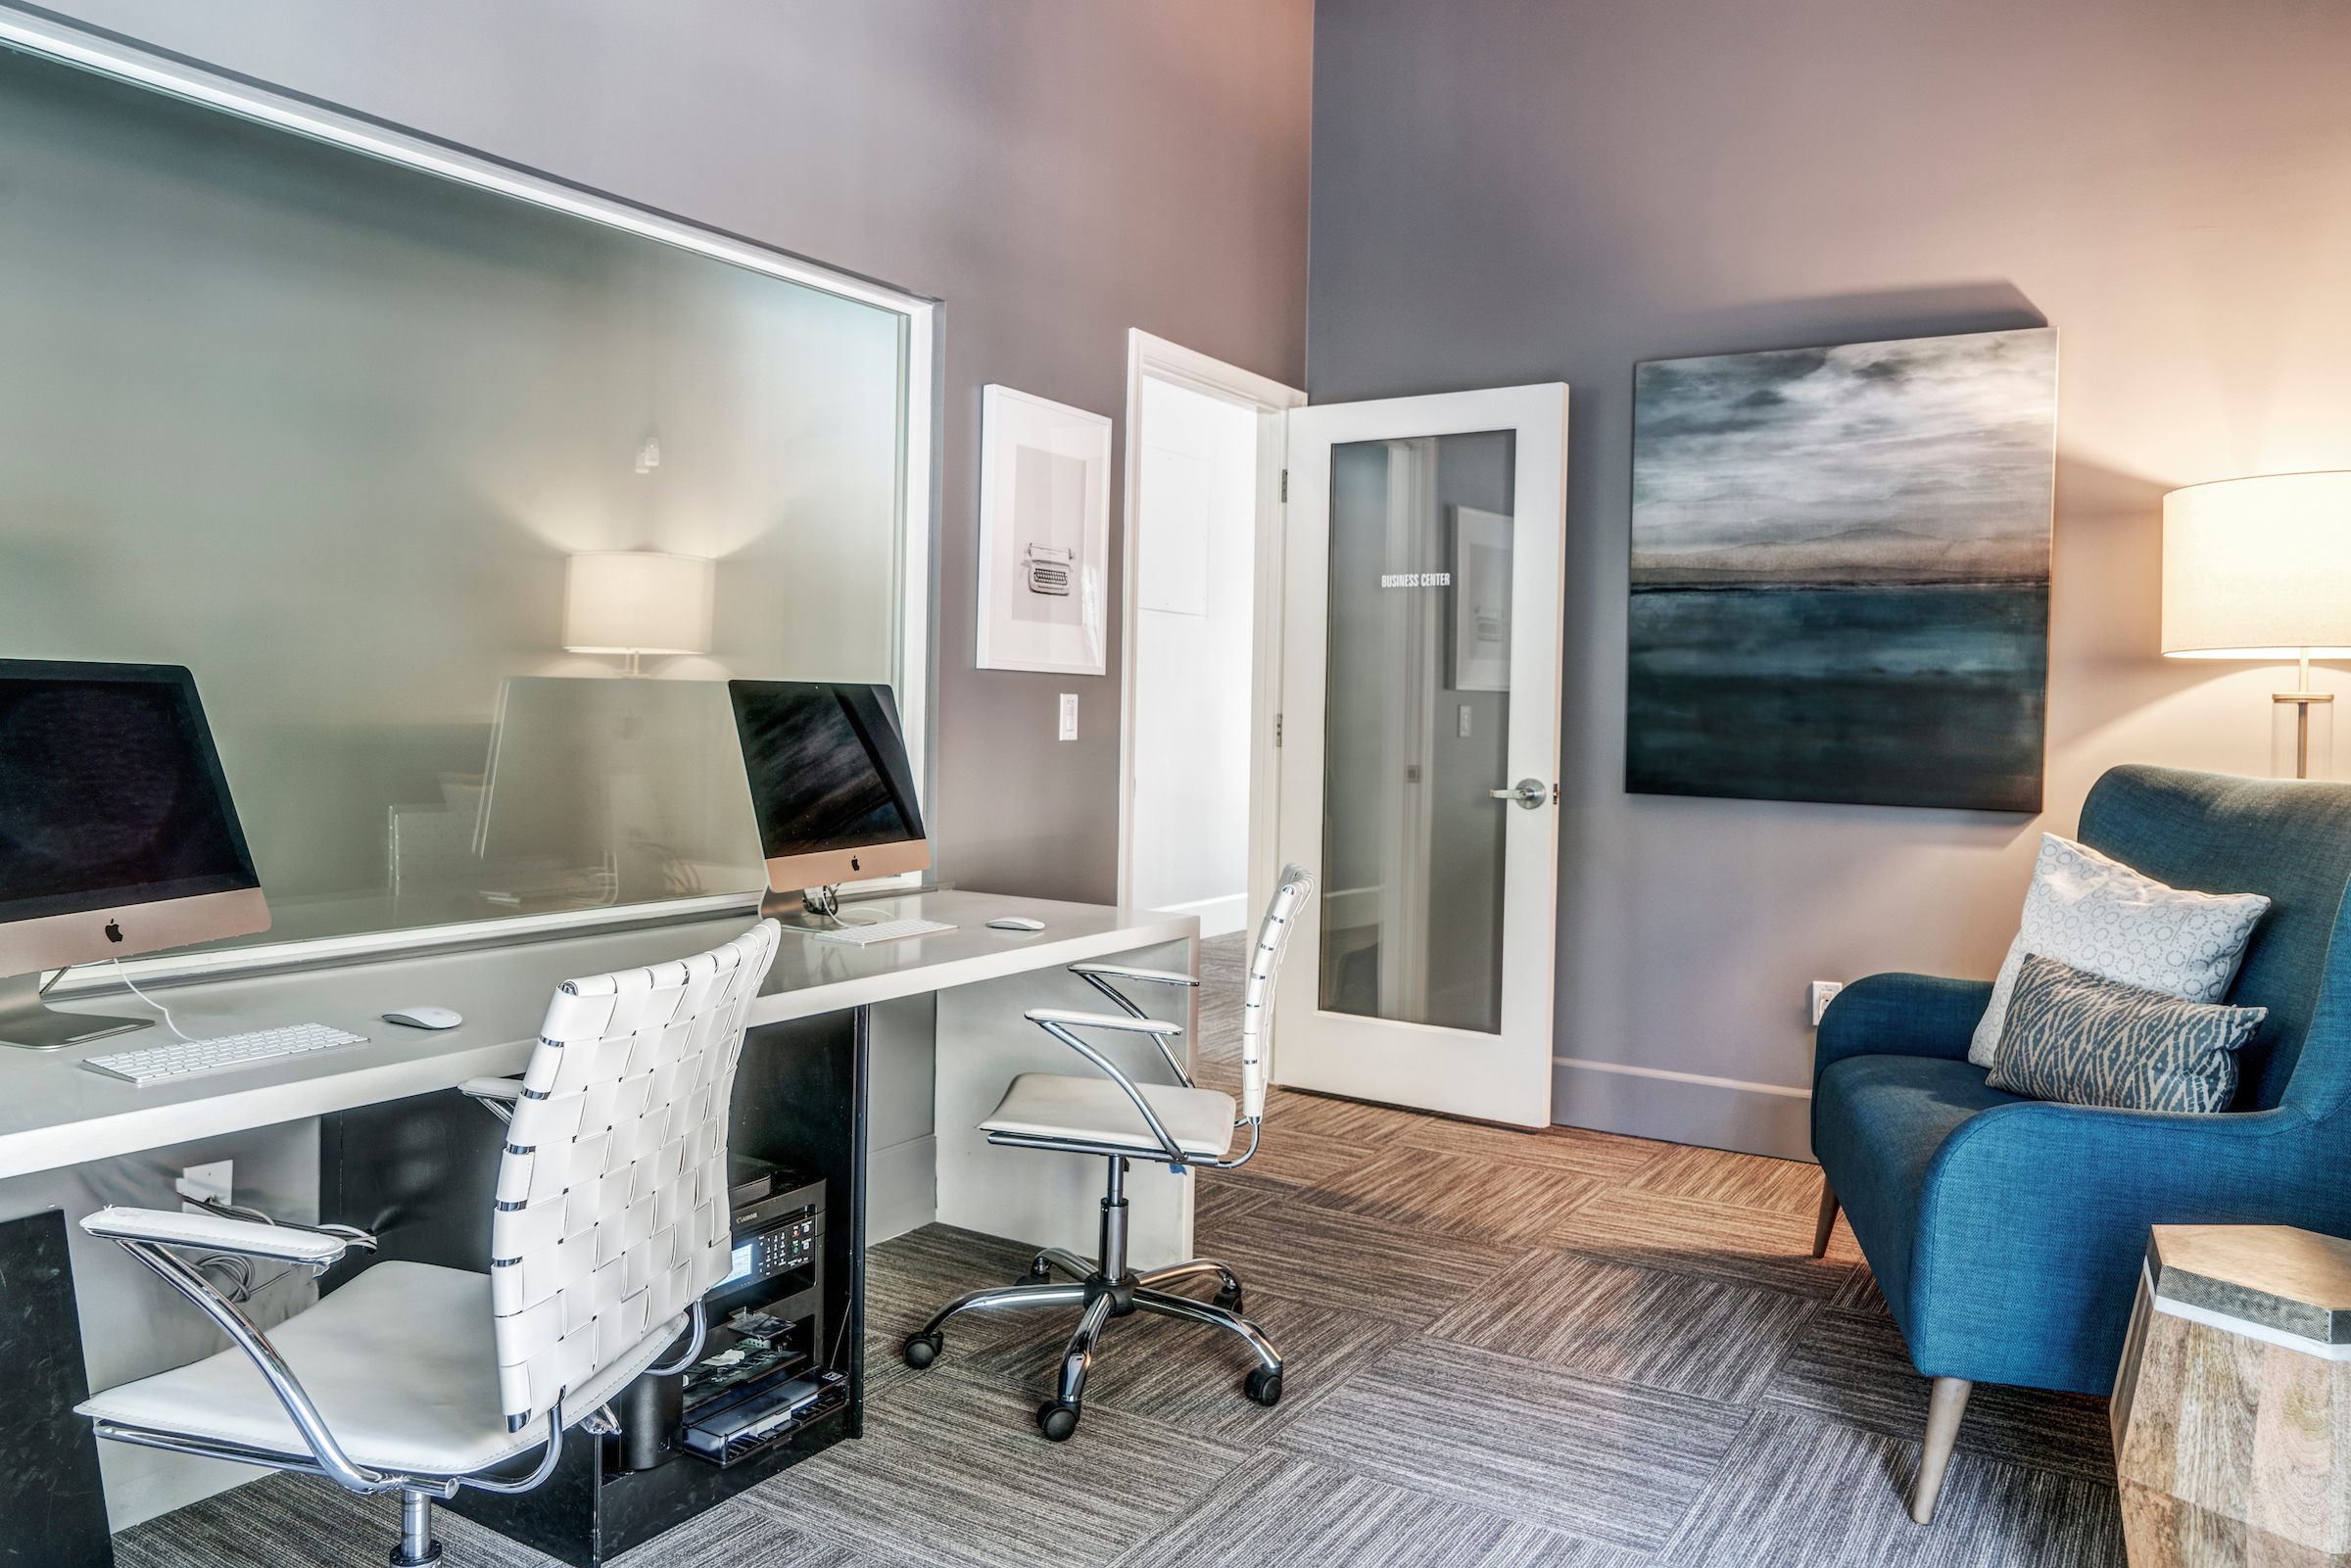 Onsite business facilities